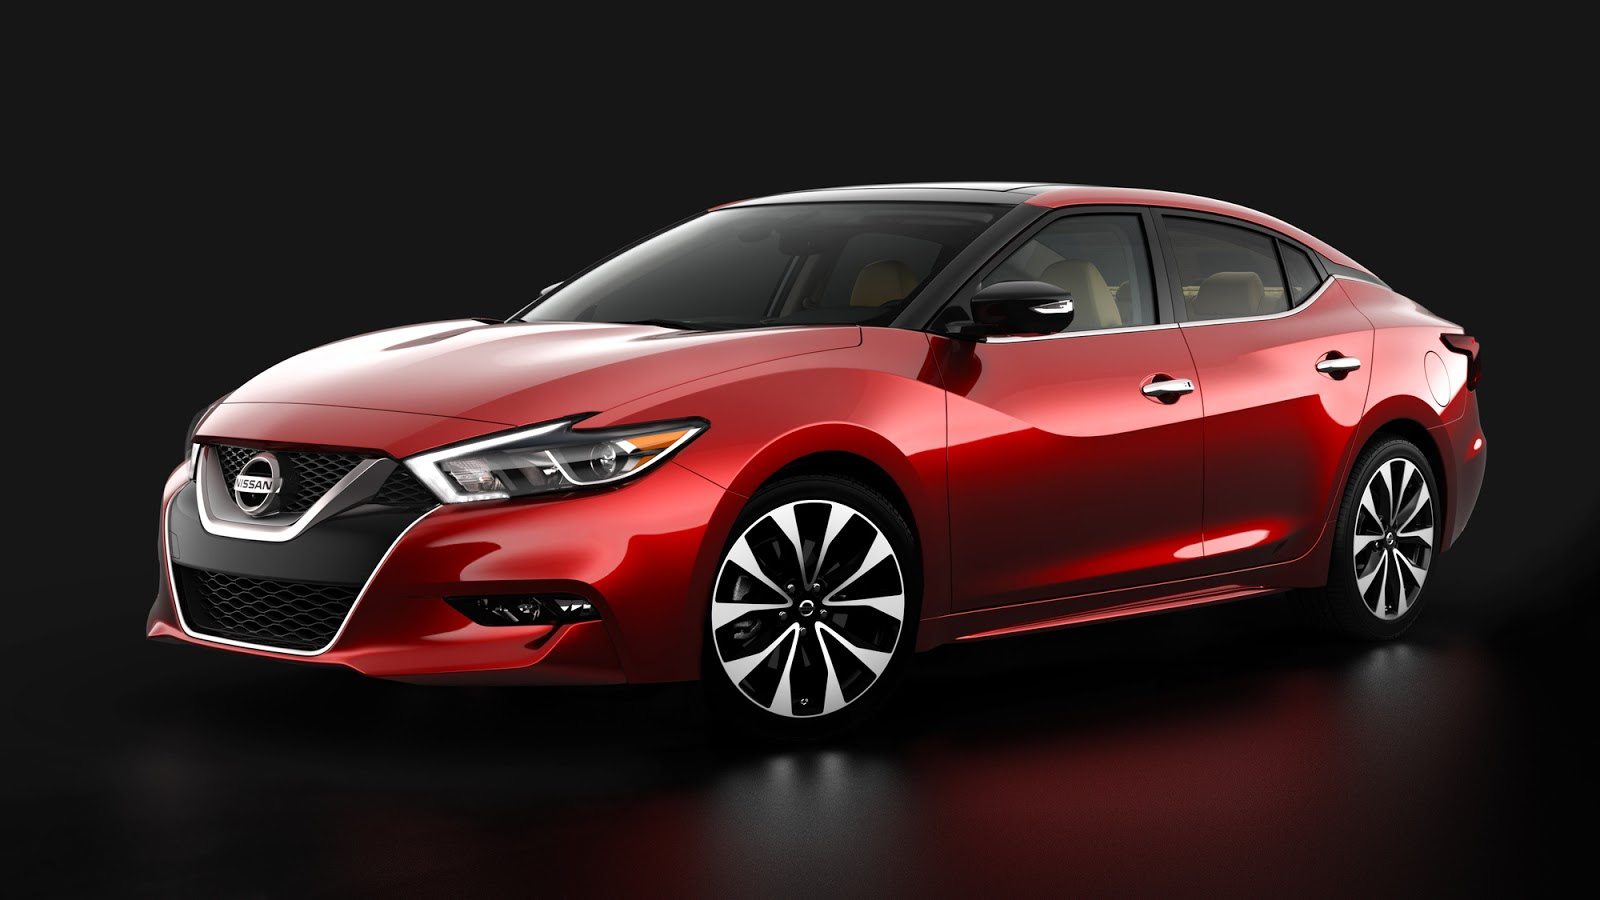 2016 Nissan Maxima First Photos Released ahead of New York Debut